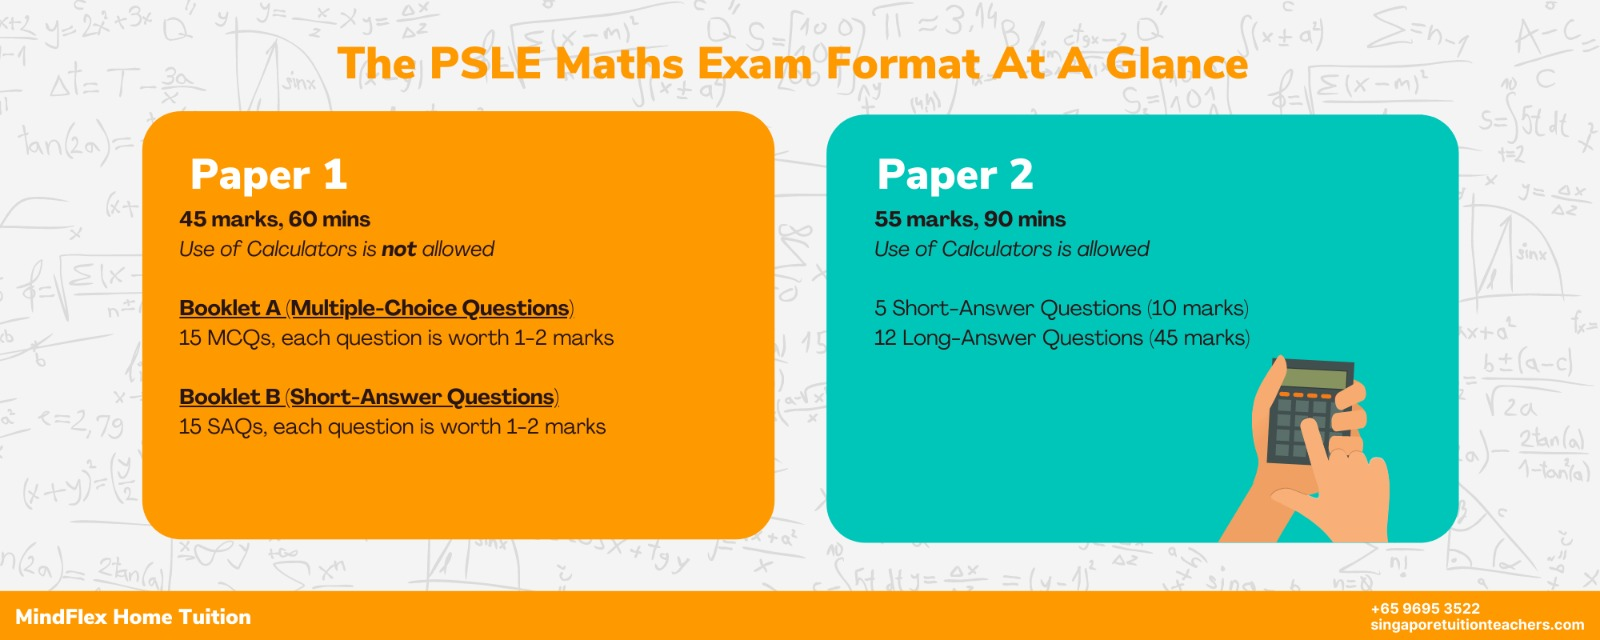 PSLE Maths Infographic